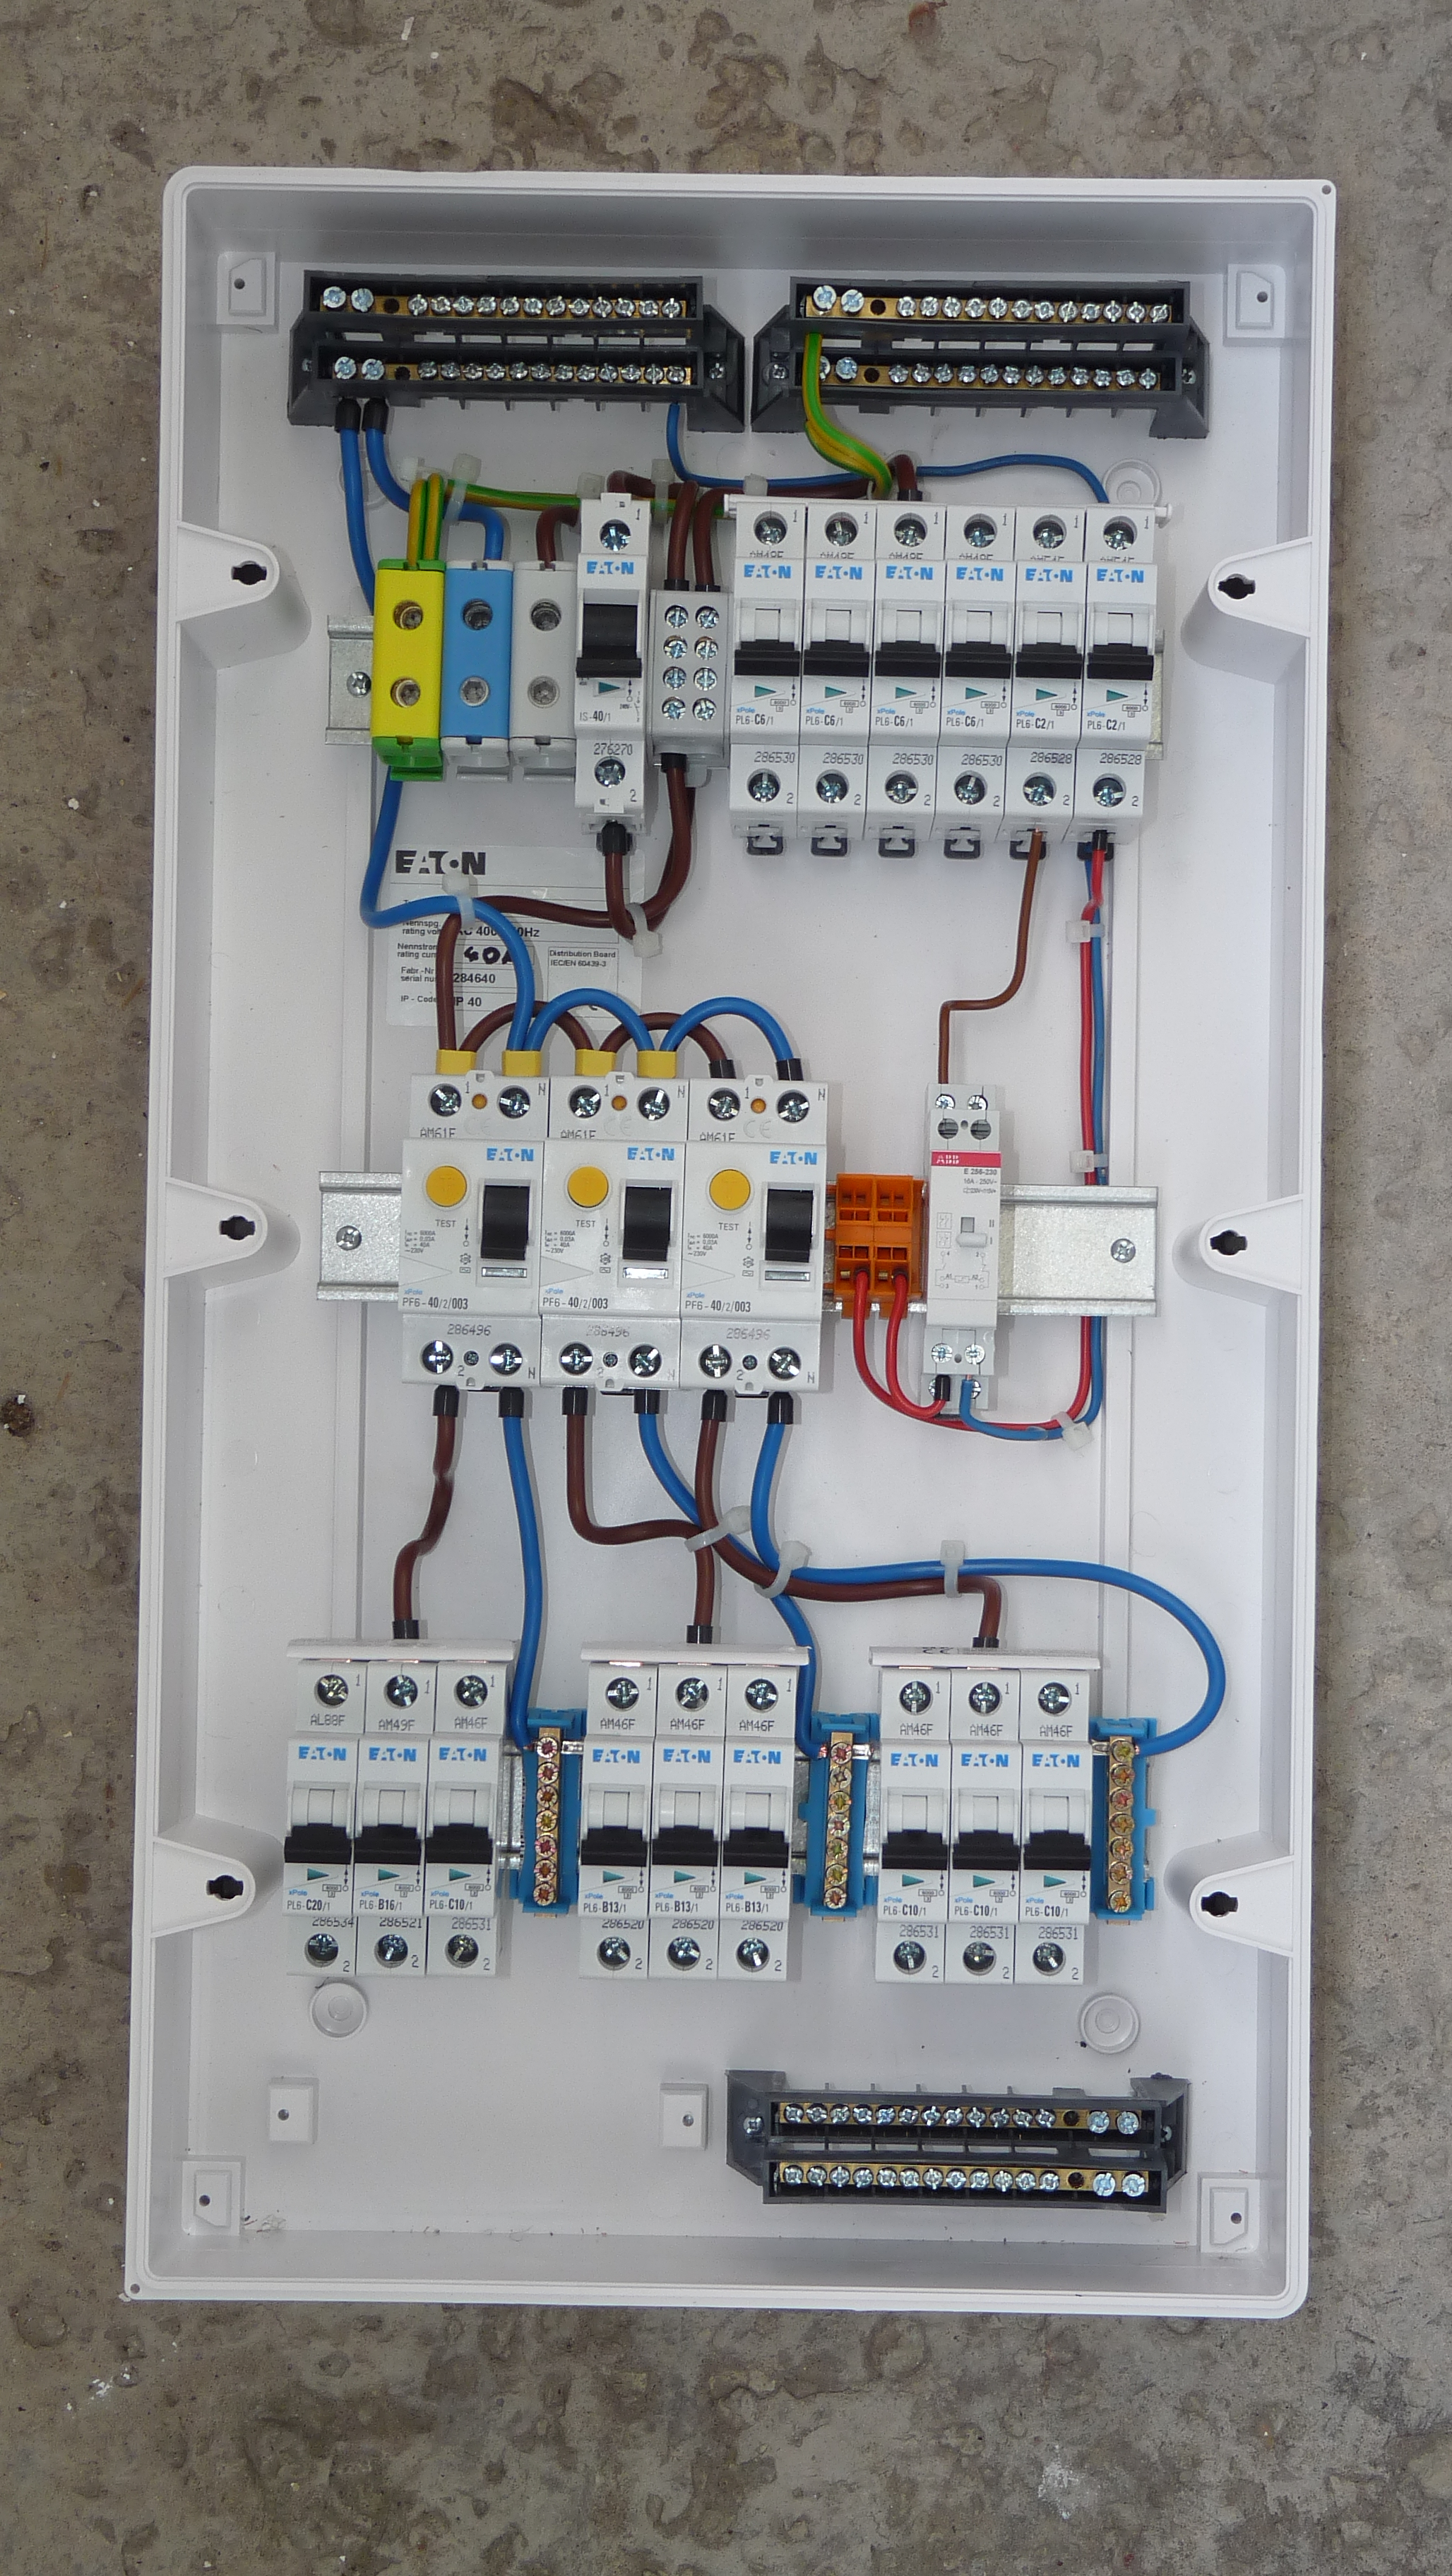 file paekaare 24 wiring diagram of apartment fuse box jpg bmw e46 fuse box  wiring file